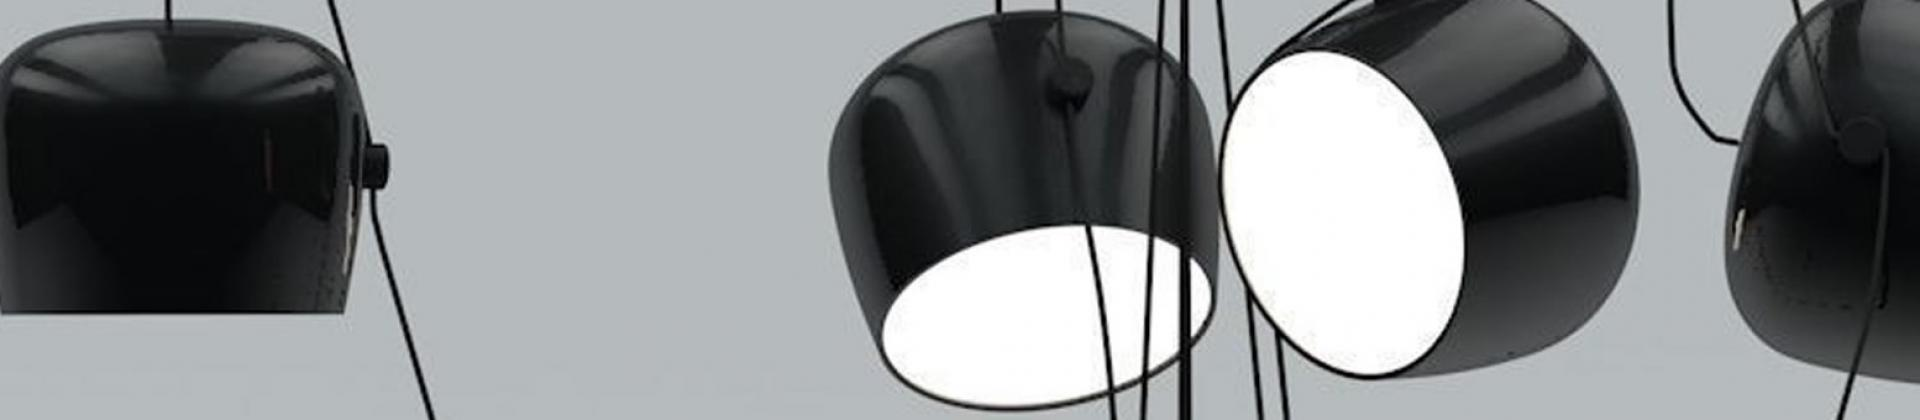 Flos ic lights t1 high chrome